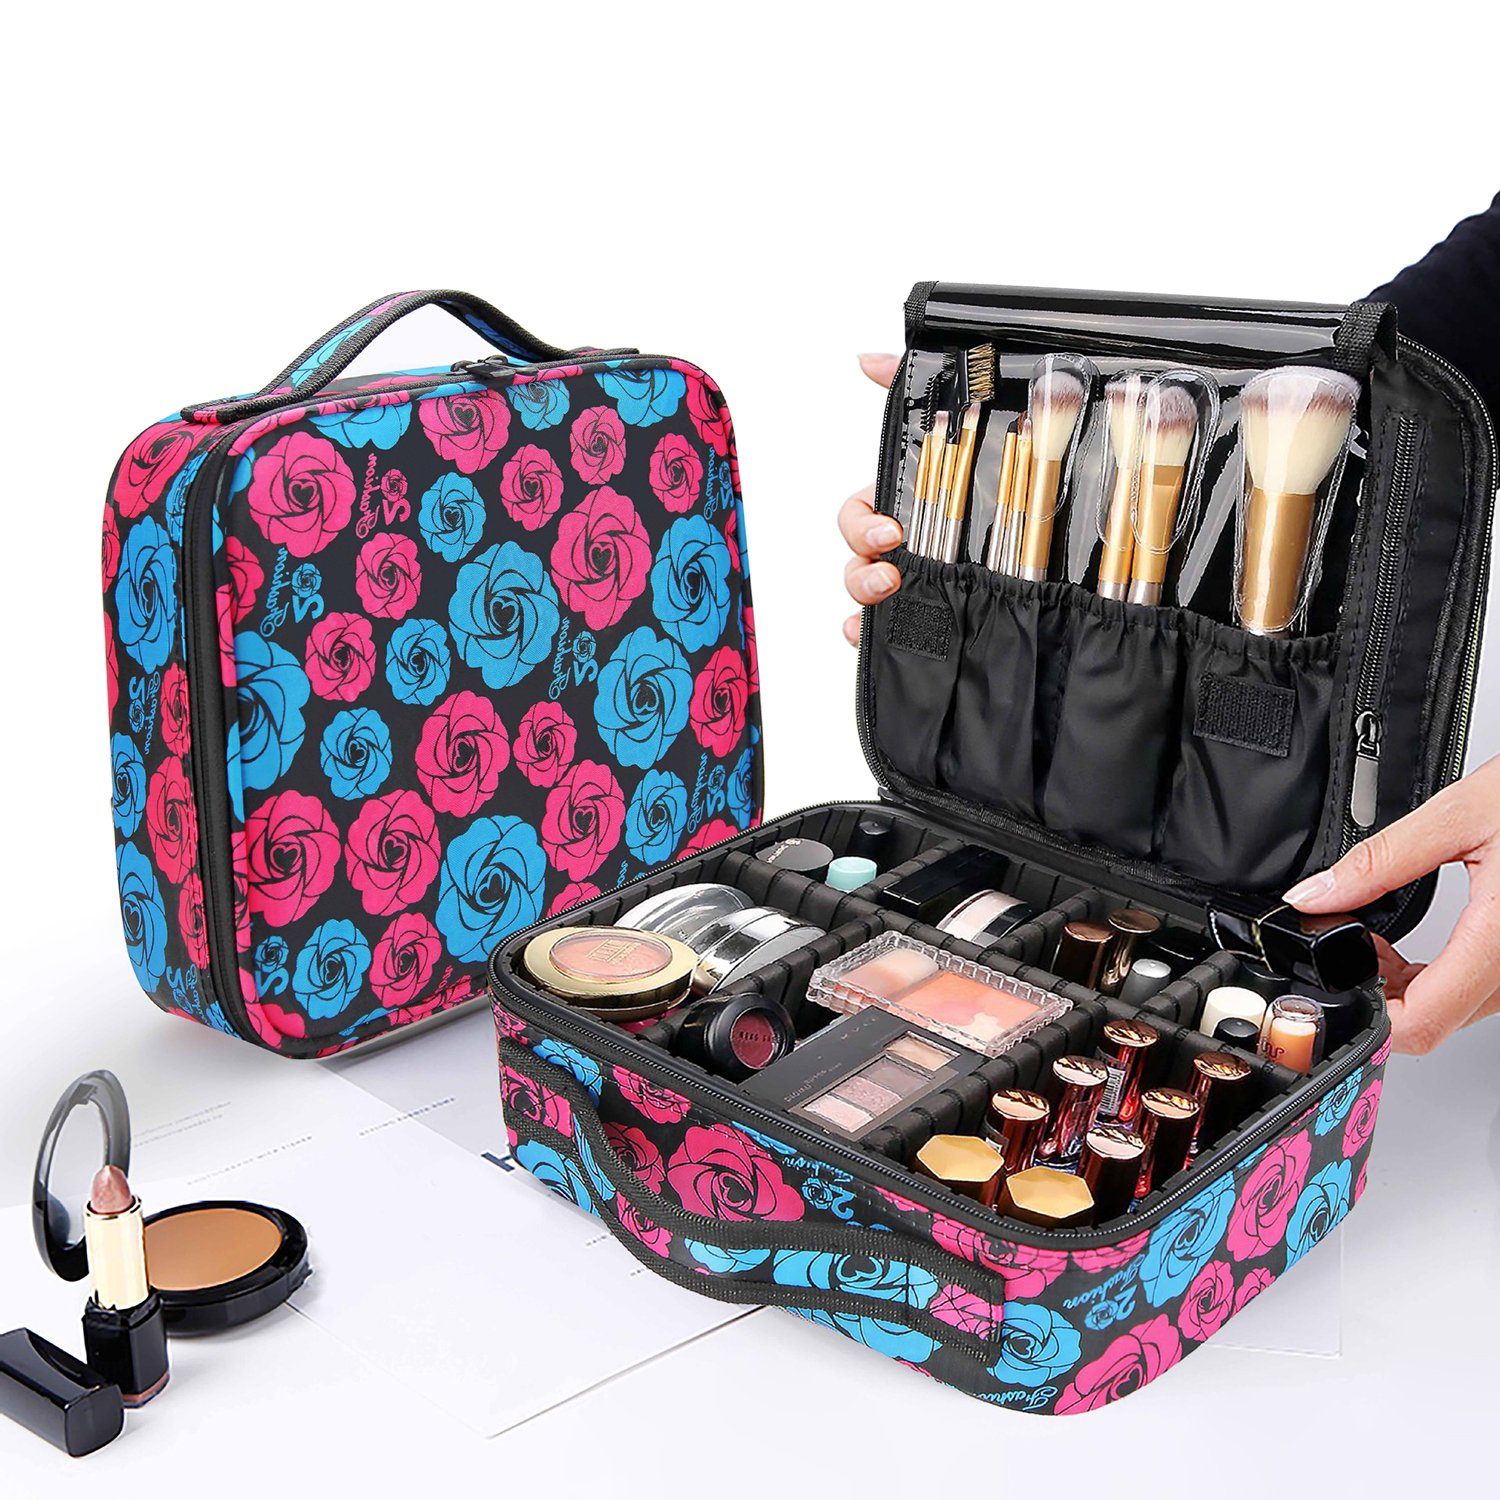 Makeup Organizer Case,Yolife Portable Cosmetic Bag Organizer with Brush Set Holder,Storage Case Travel Bag with Adjustable Dividers(10inch)